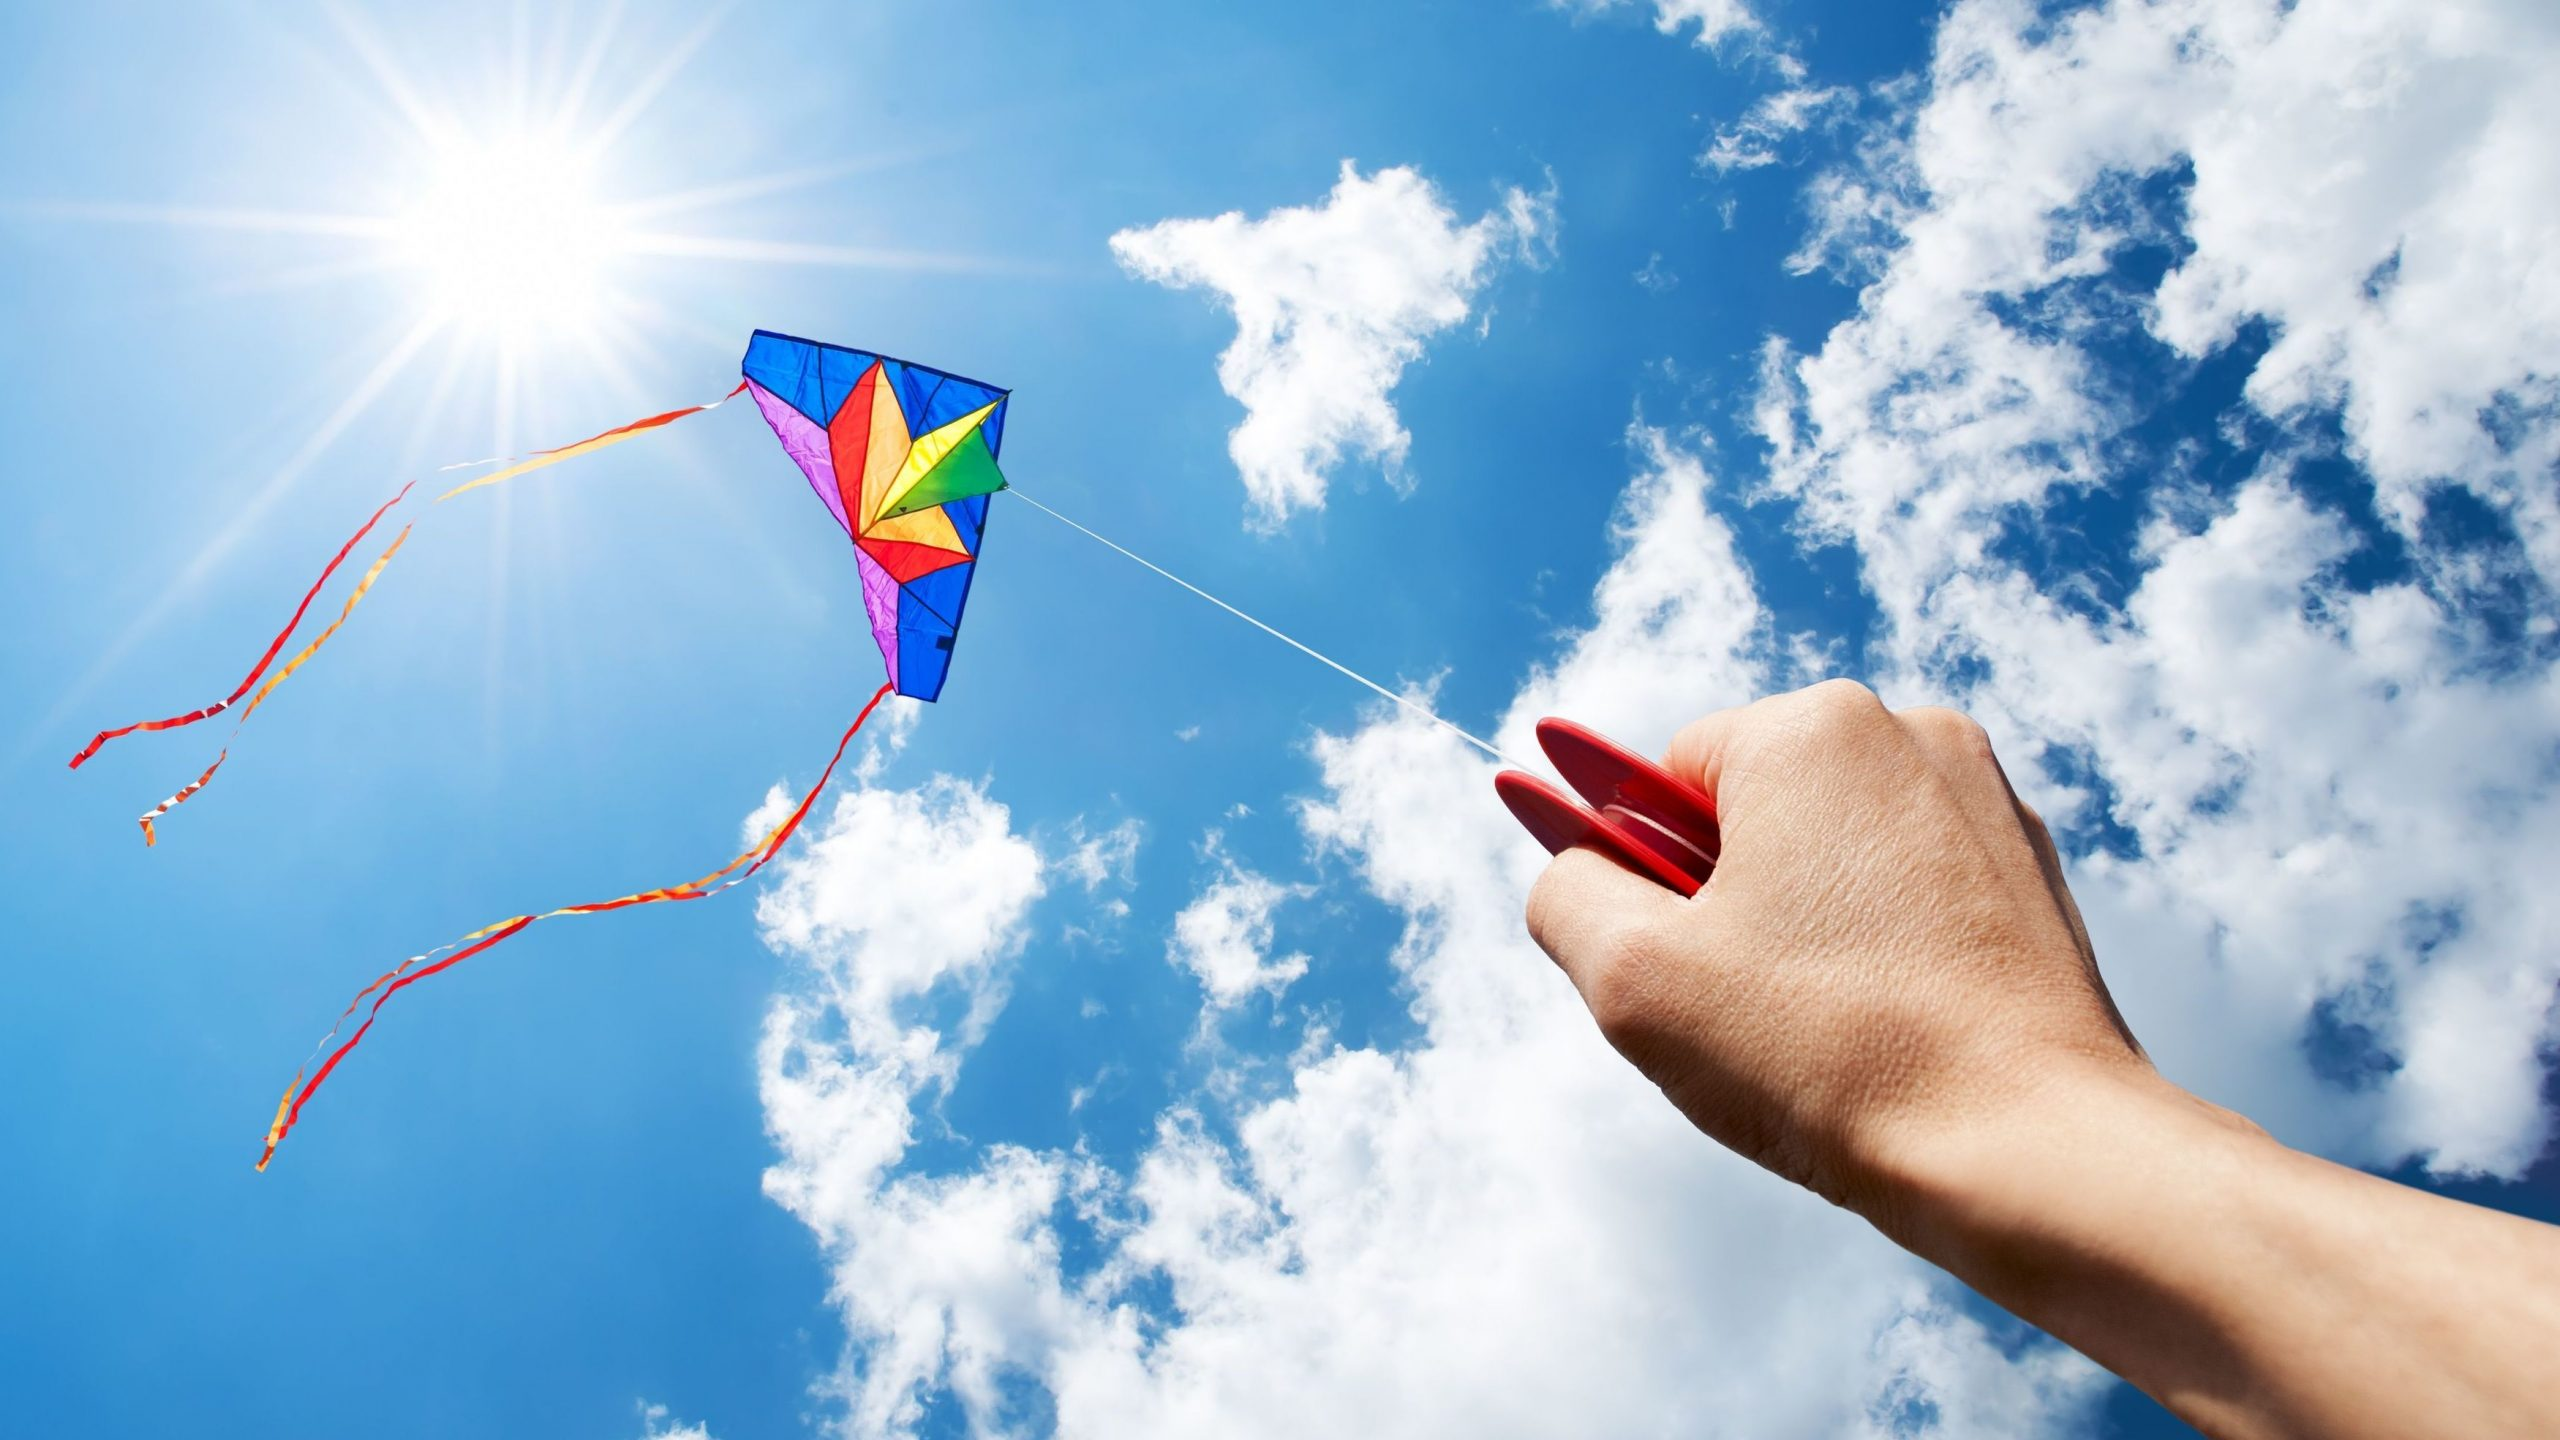 HD Wallpaper Of A Kite Flying High PaperPull 2560x1440